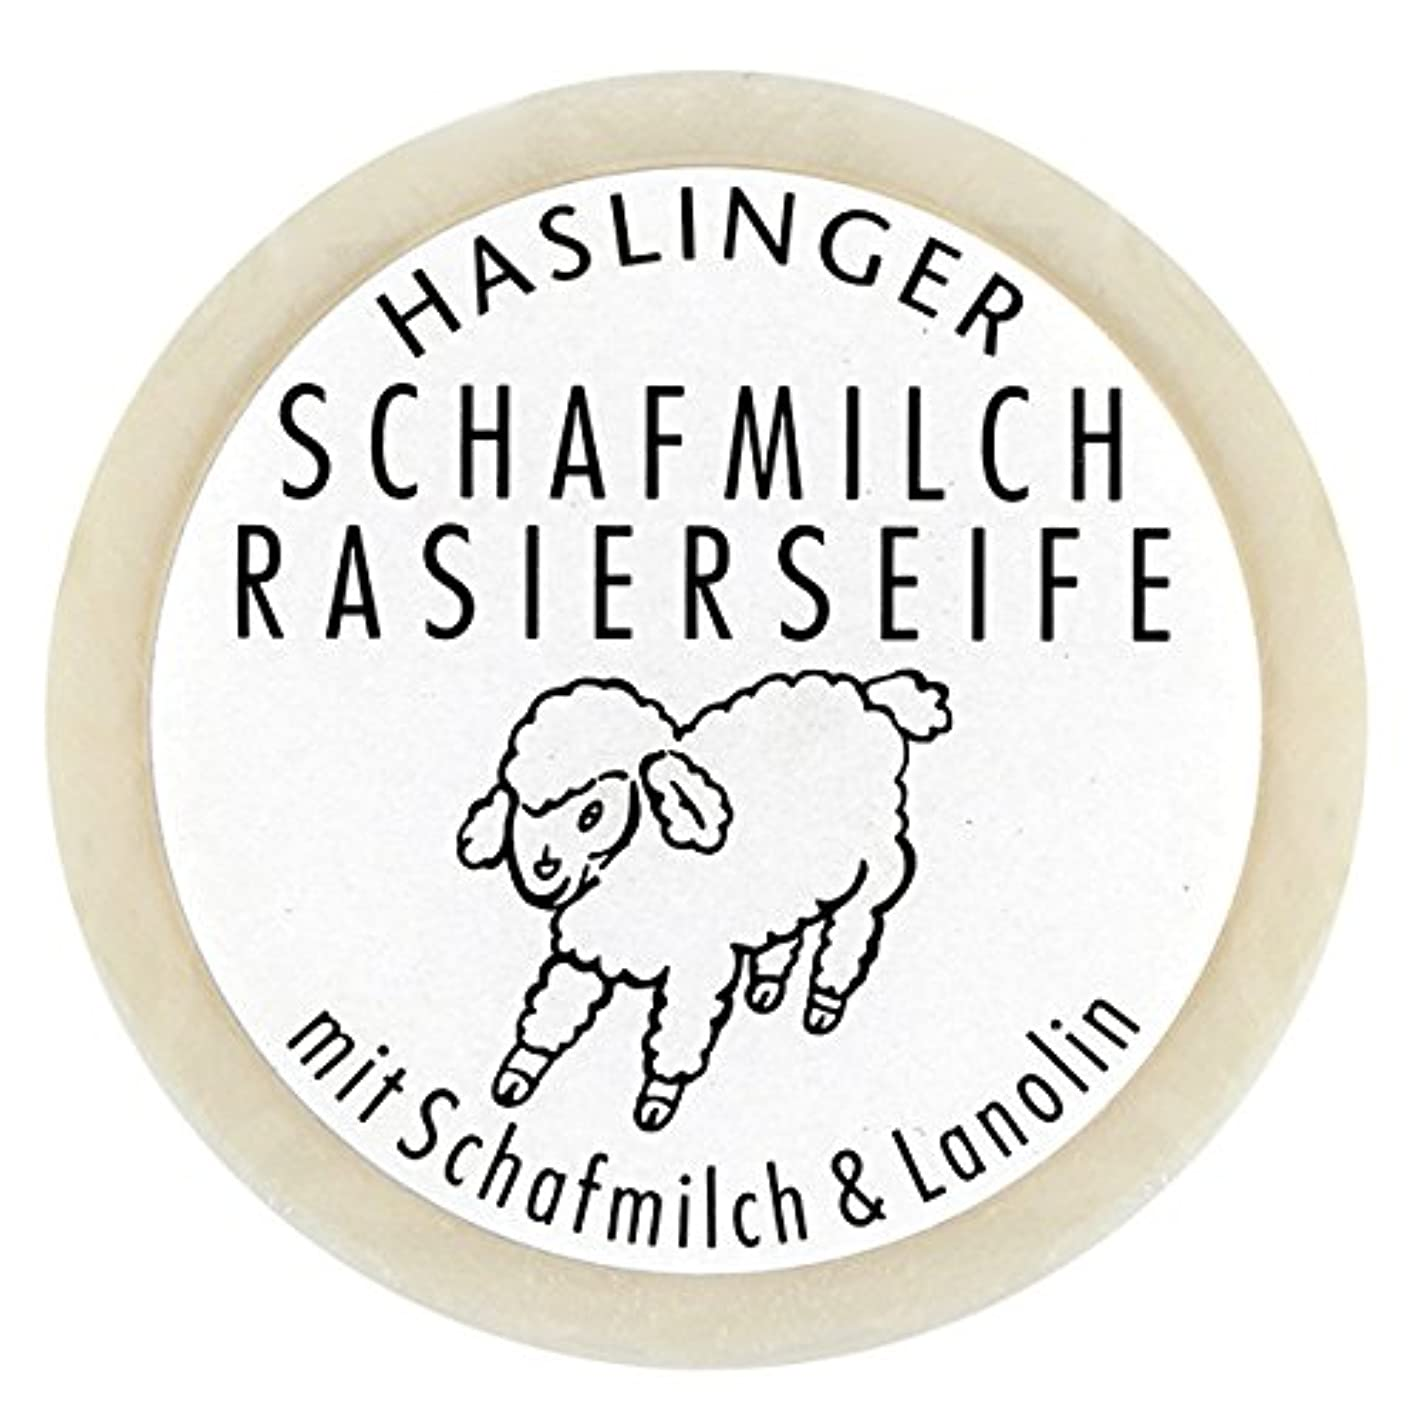 Schafmilch Rasierseife (Ewe`s Milk Shave Soap) 60g soap bar by Haslinger by Haslinger